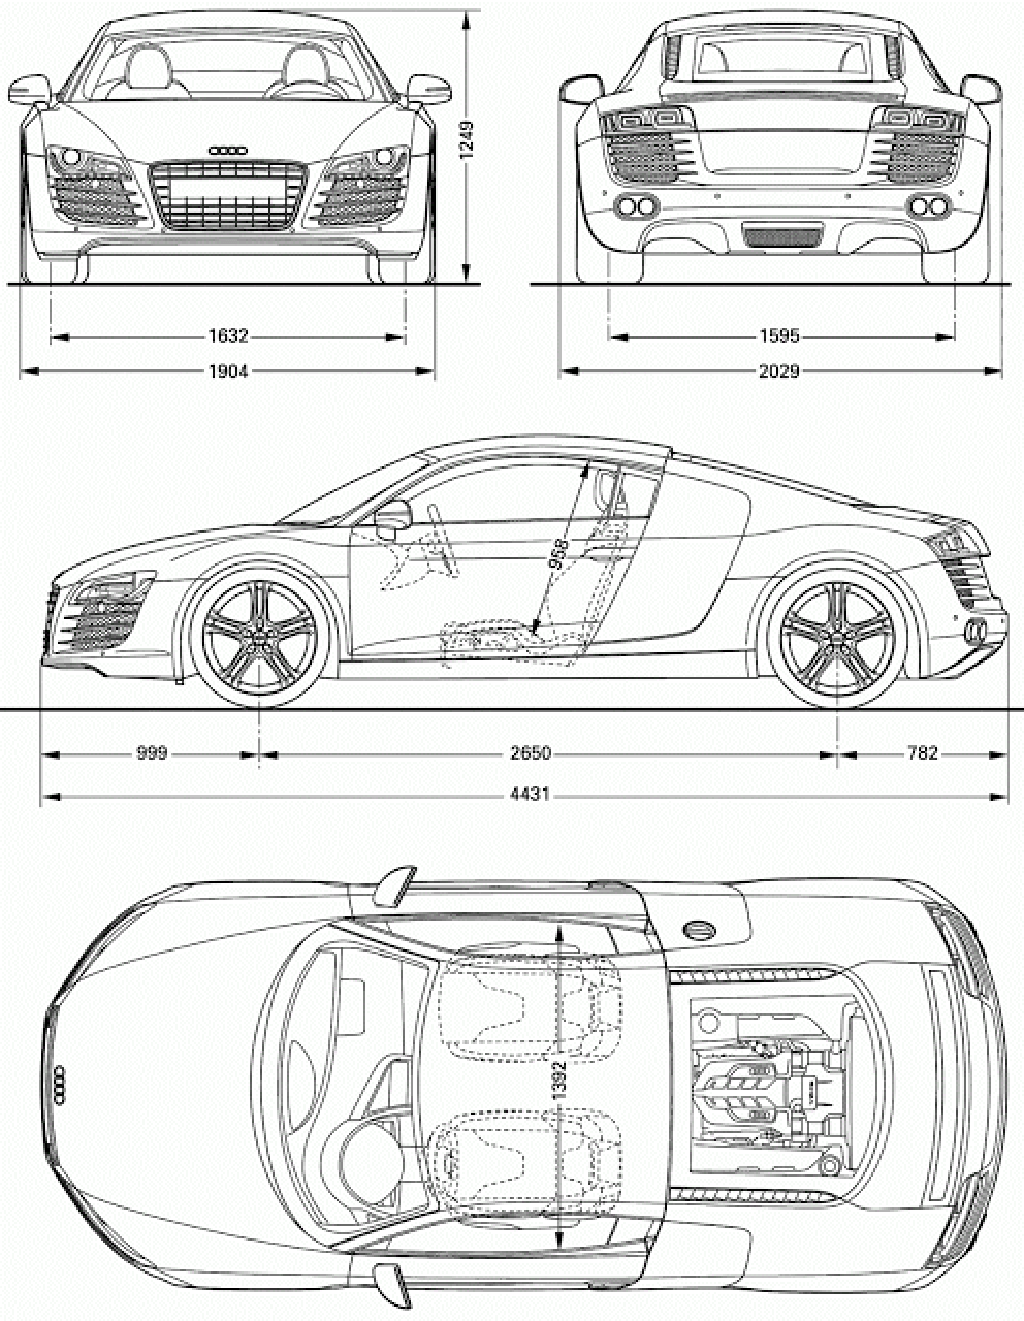 Download Car Blueprint of Audi-R8 | Car Blueprints | Pinterest ...